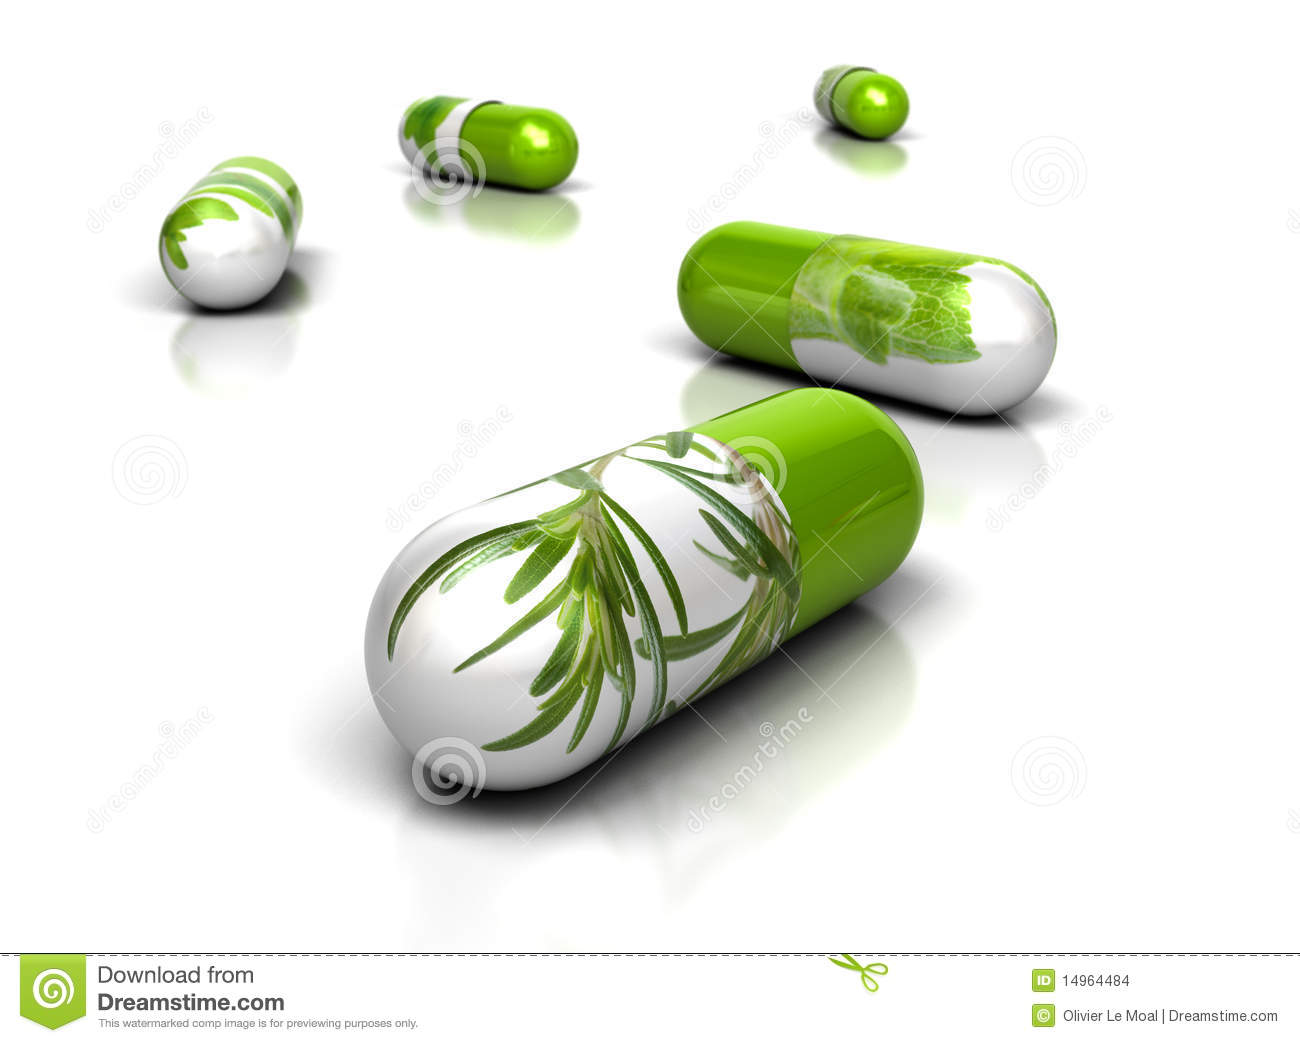 Phytotherapy and Phytopharmacology